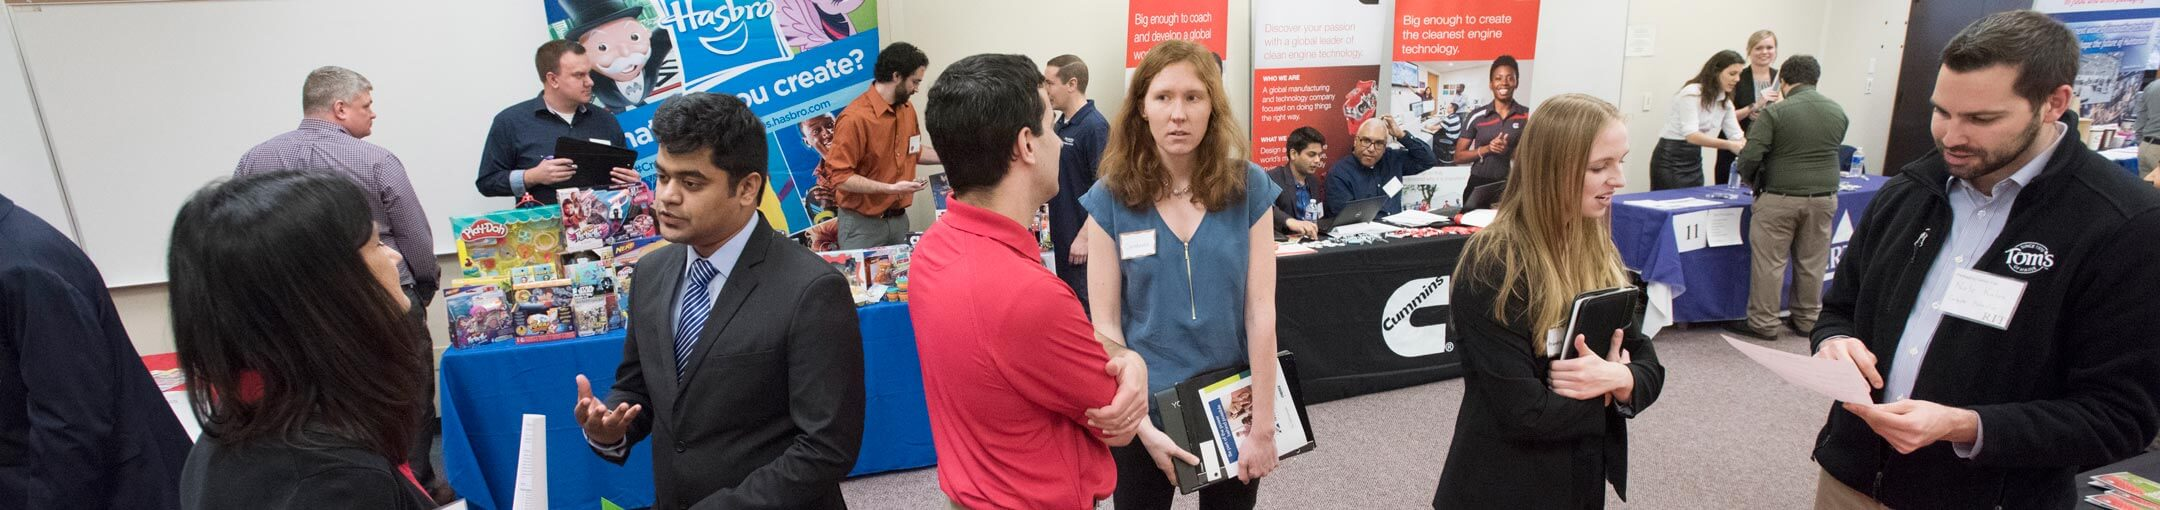 Students and potential employers talking to each other at a career fair